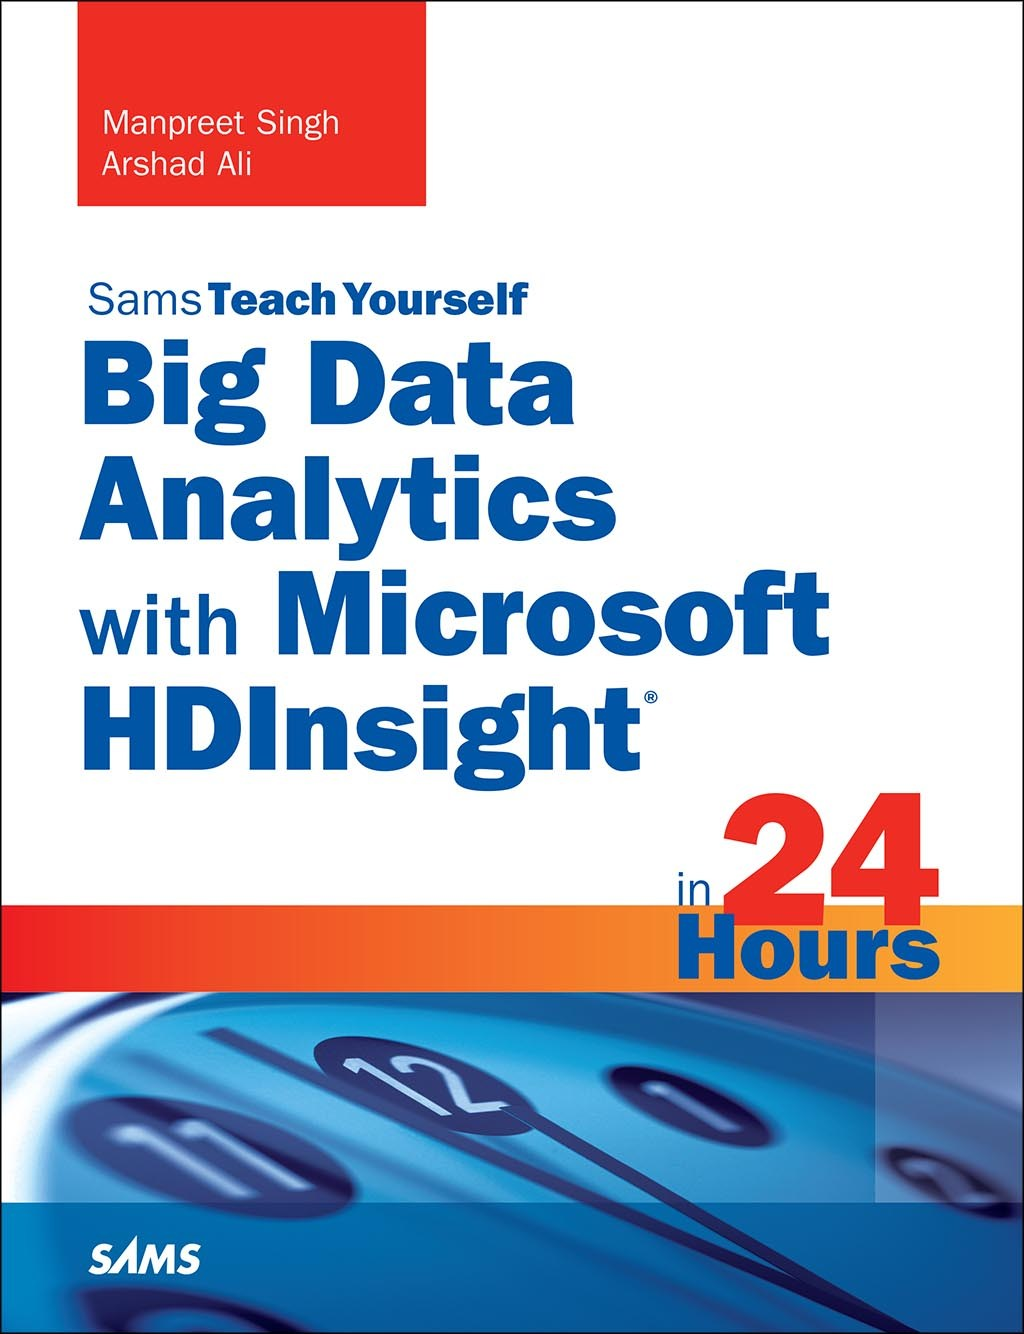 Big Data Analytics with Microsoft HDInsight in 24 Hours, Sams Teach Yourself: Big Data, Hadoop, and Microsoft Azure for Better Business Intelligence